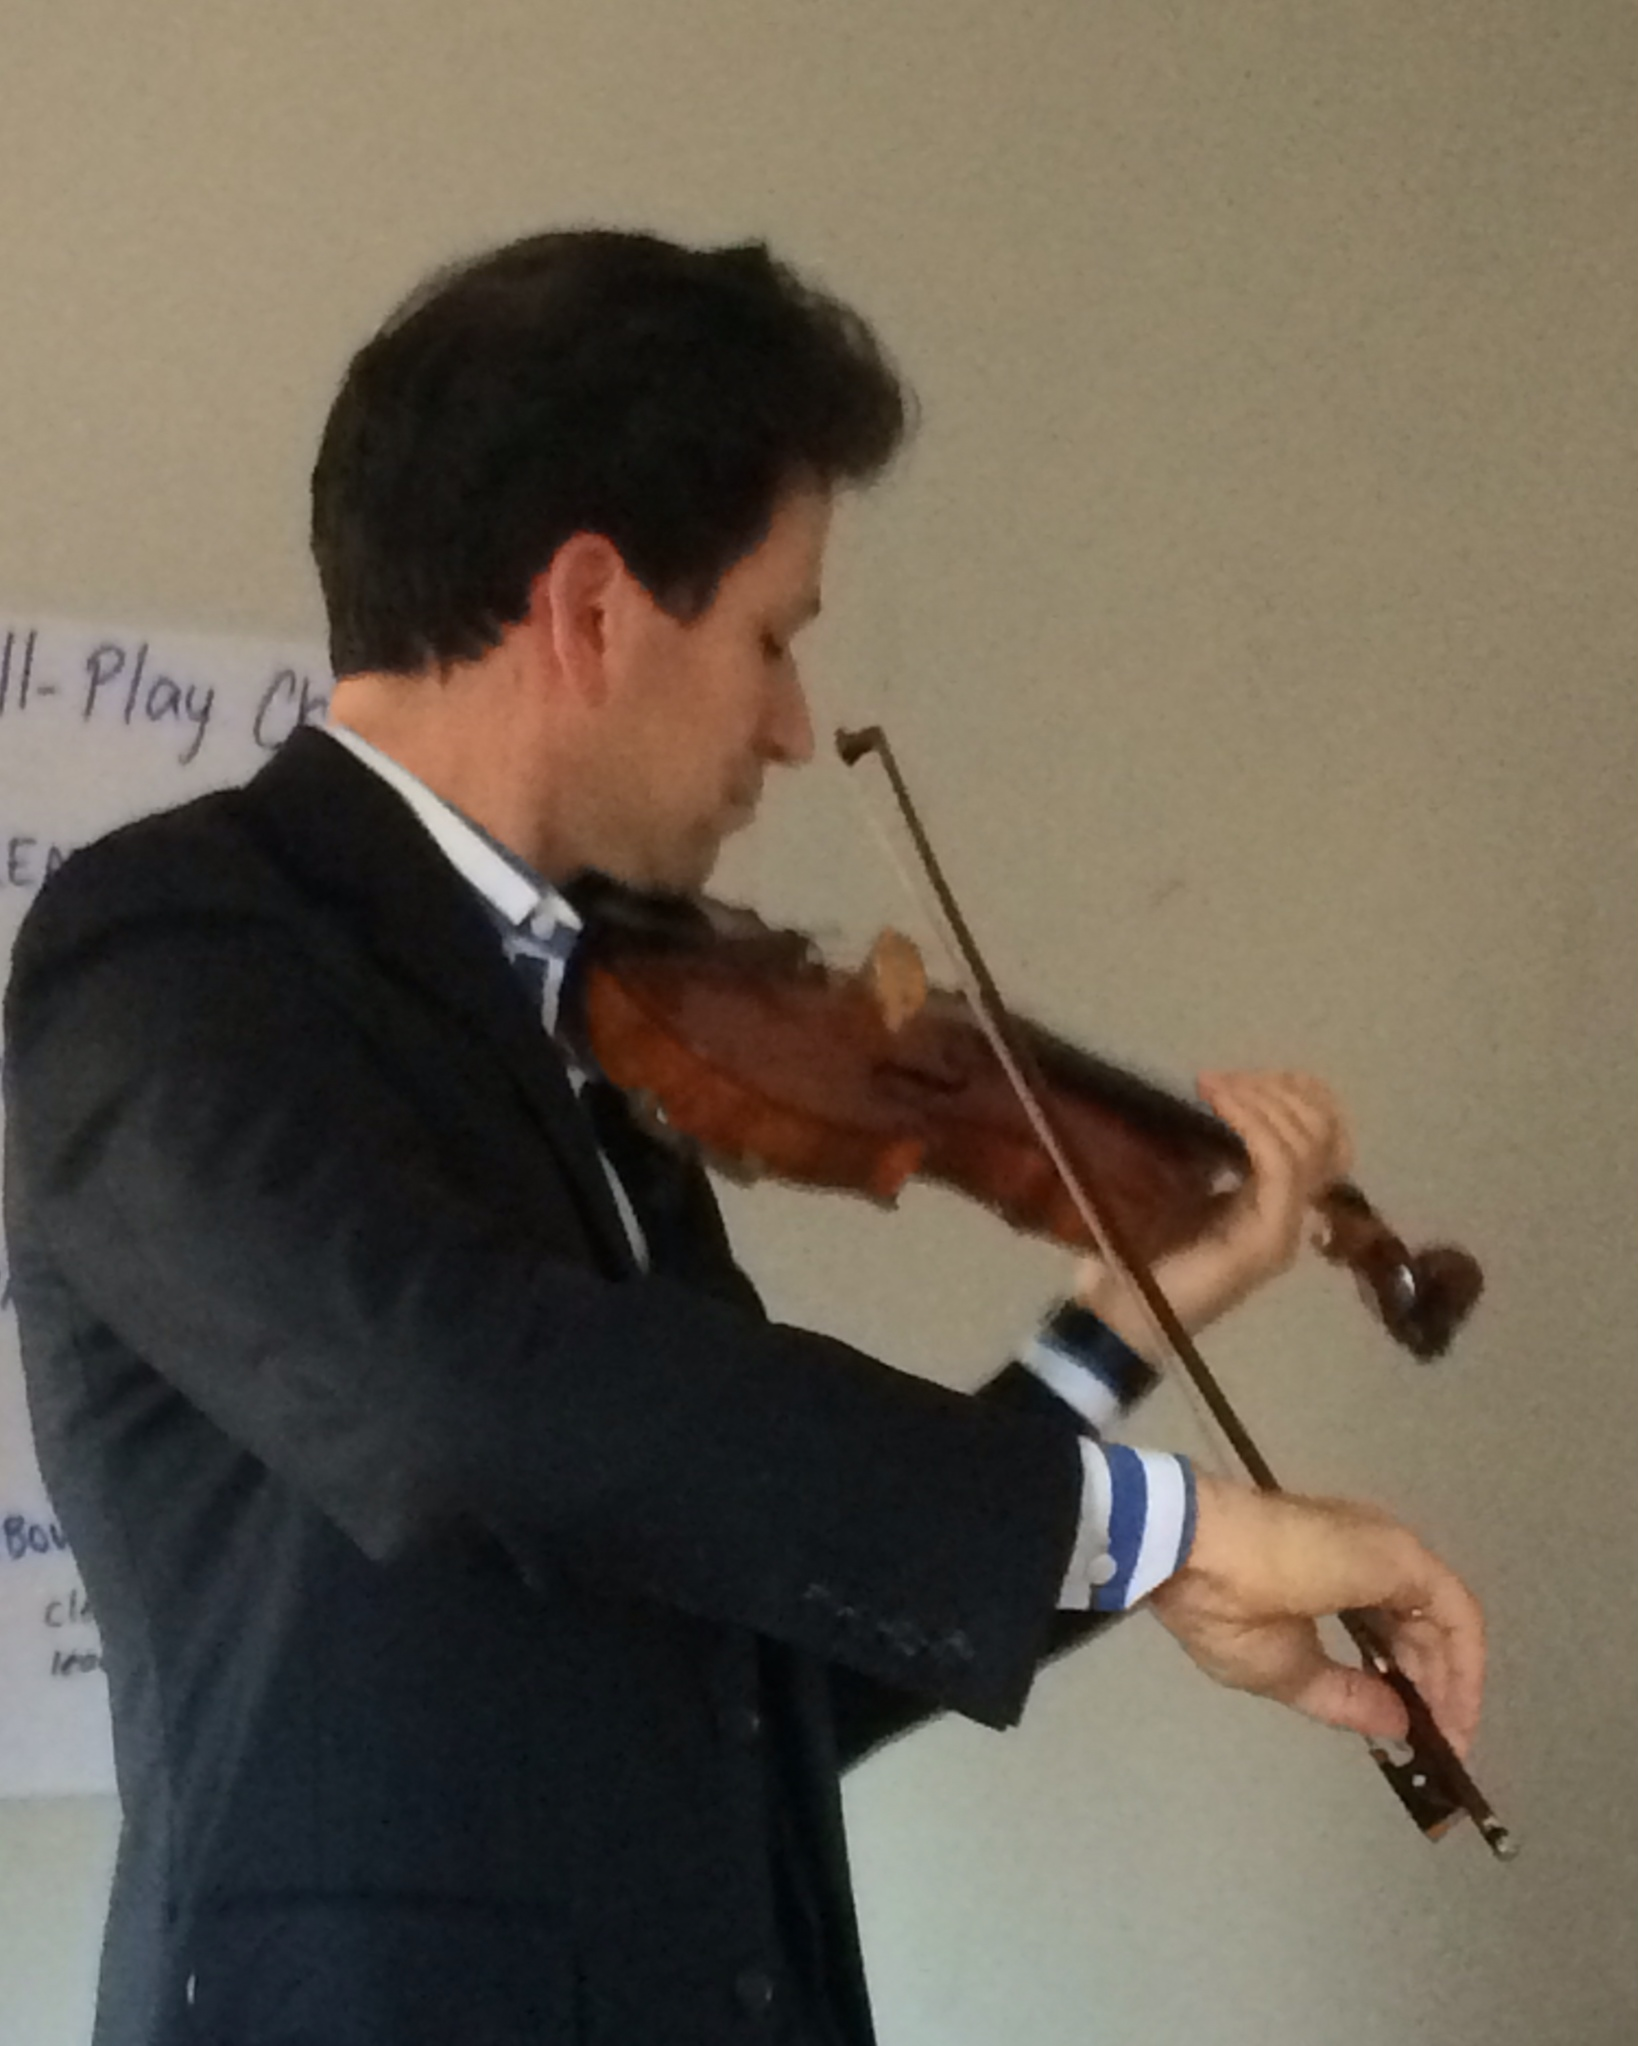 The Rolland bow in action, played by Sebastian Ruth